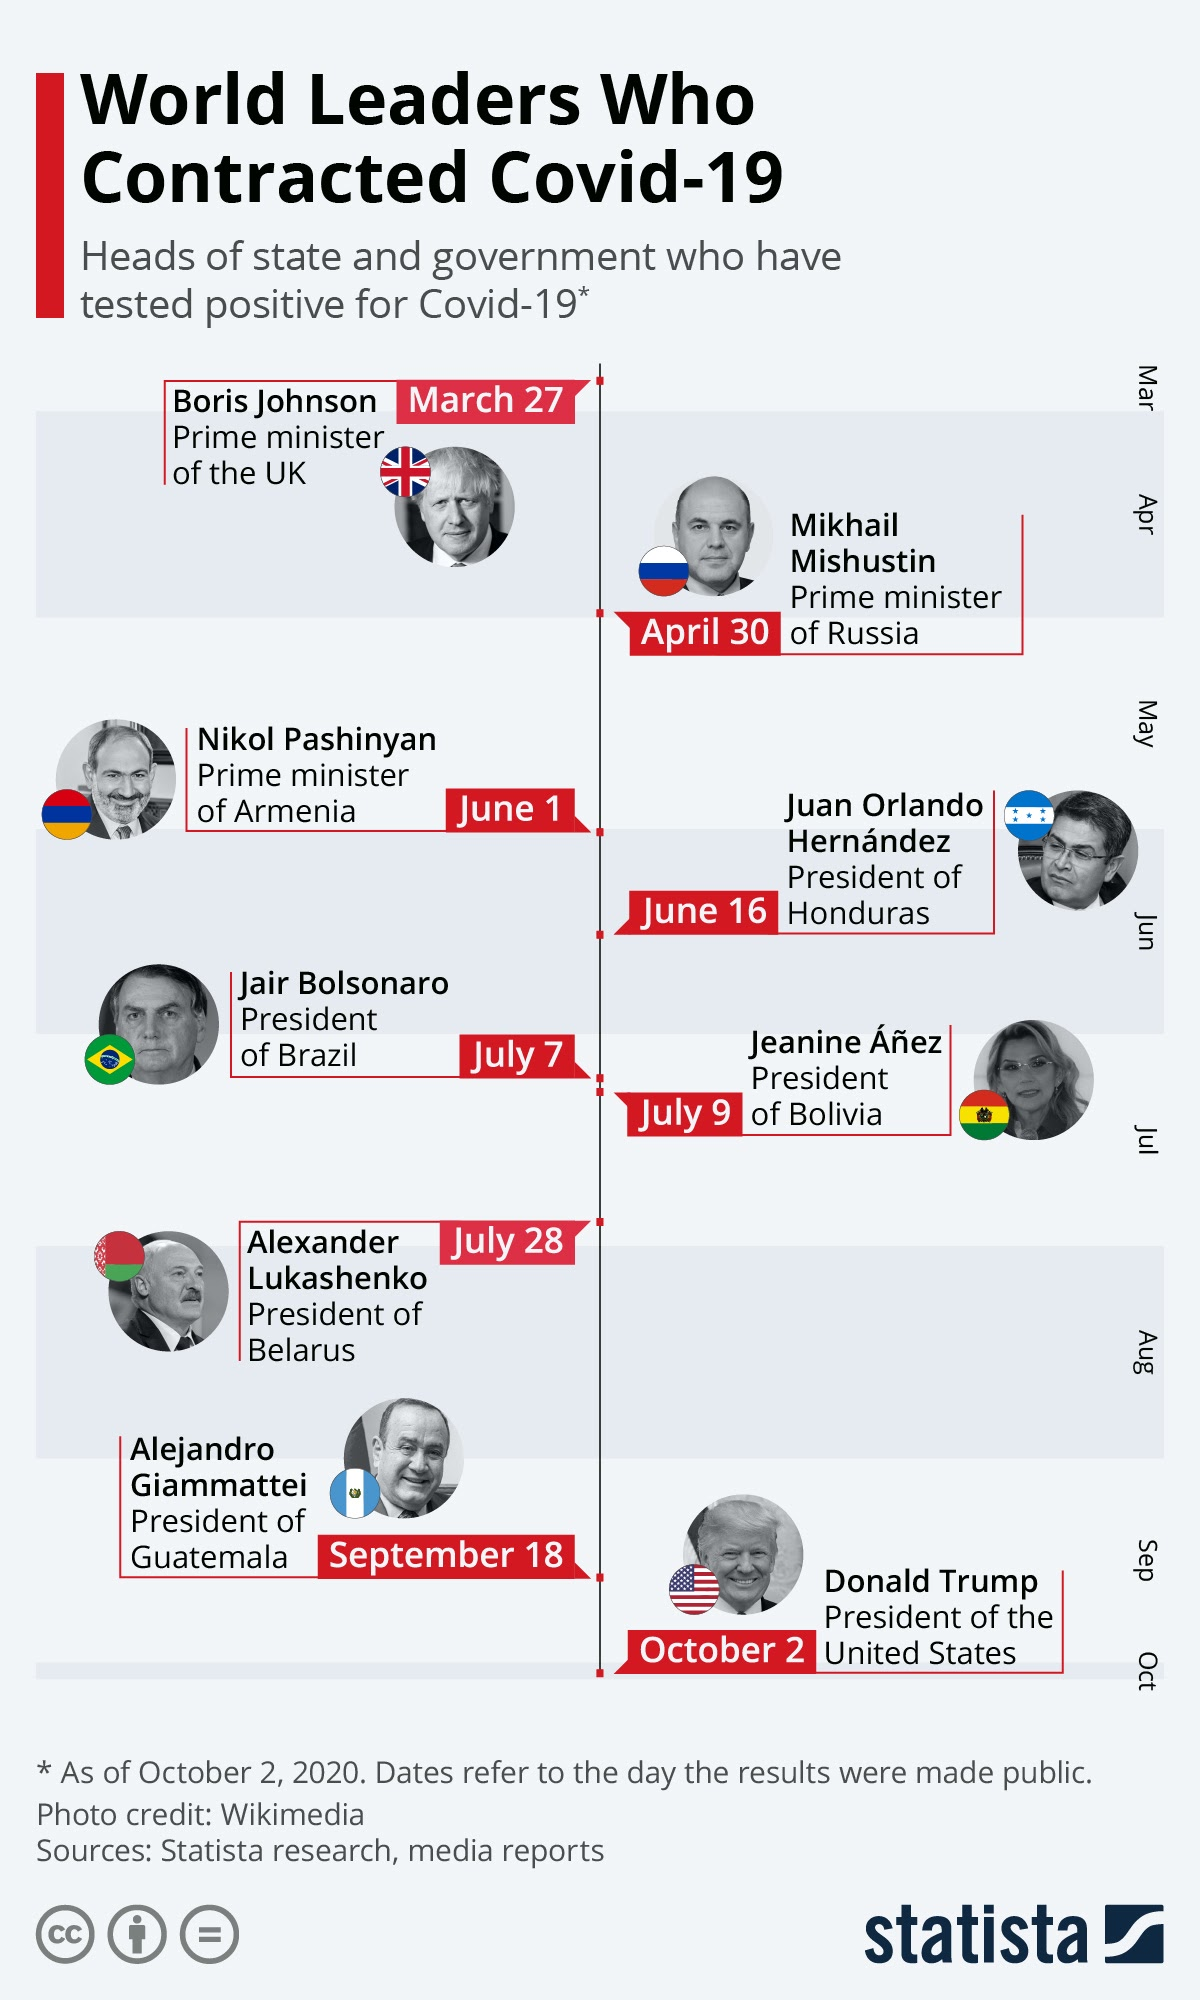 World Leaders Who Contracted Covid-19 #infographic